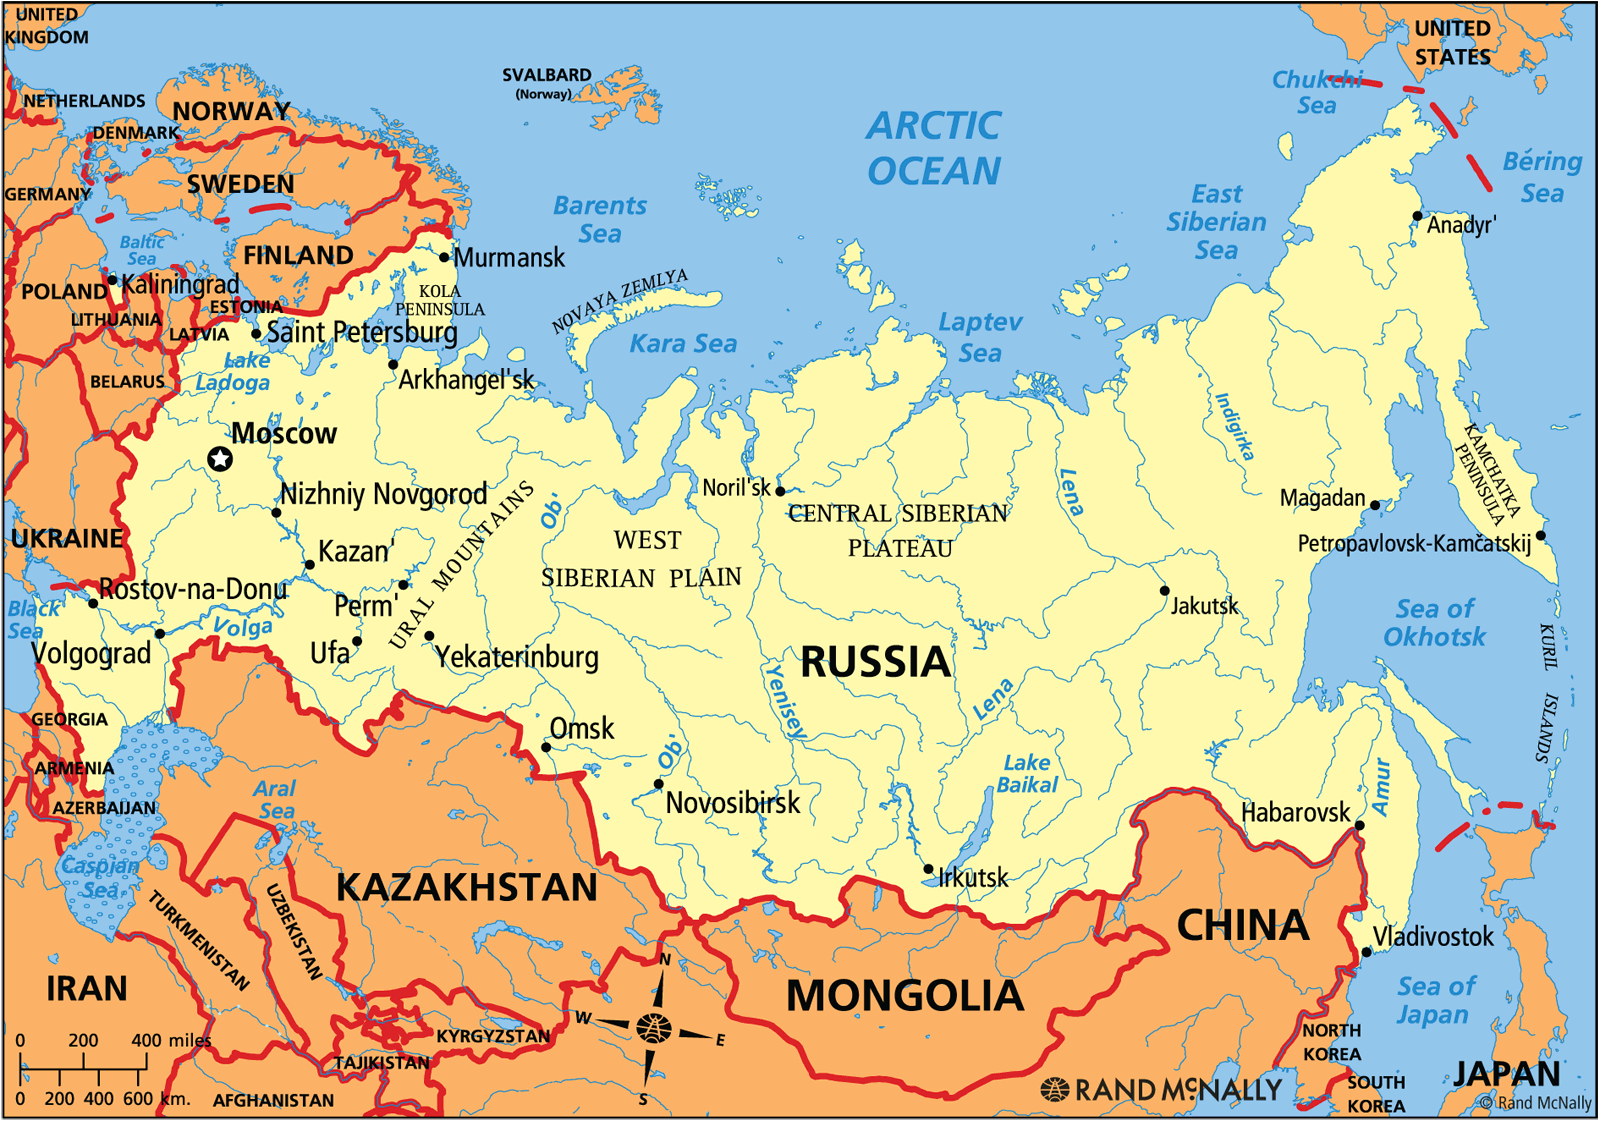 north america physical map countries with Russia Jan 12 on North Europe Political Map together with Turkmenistan Maps in addition River Map likewise Russia Jan 12 furthermore Map Of Vorarlberg.